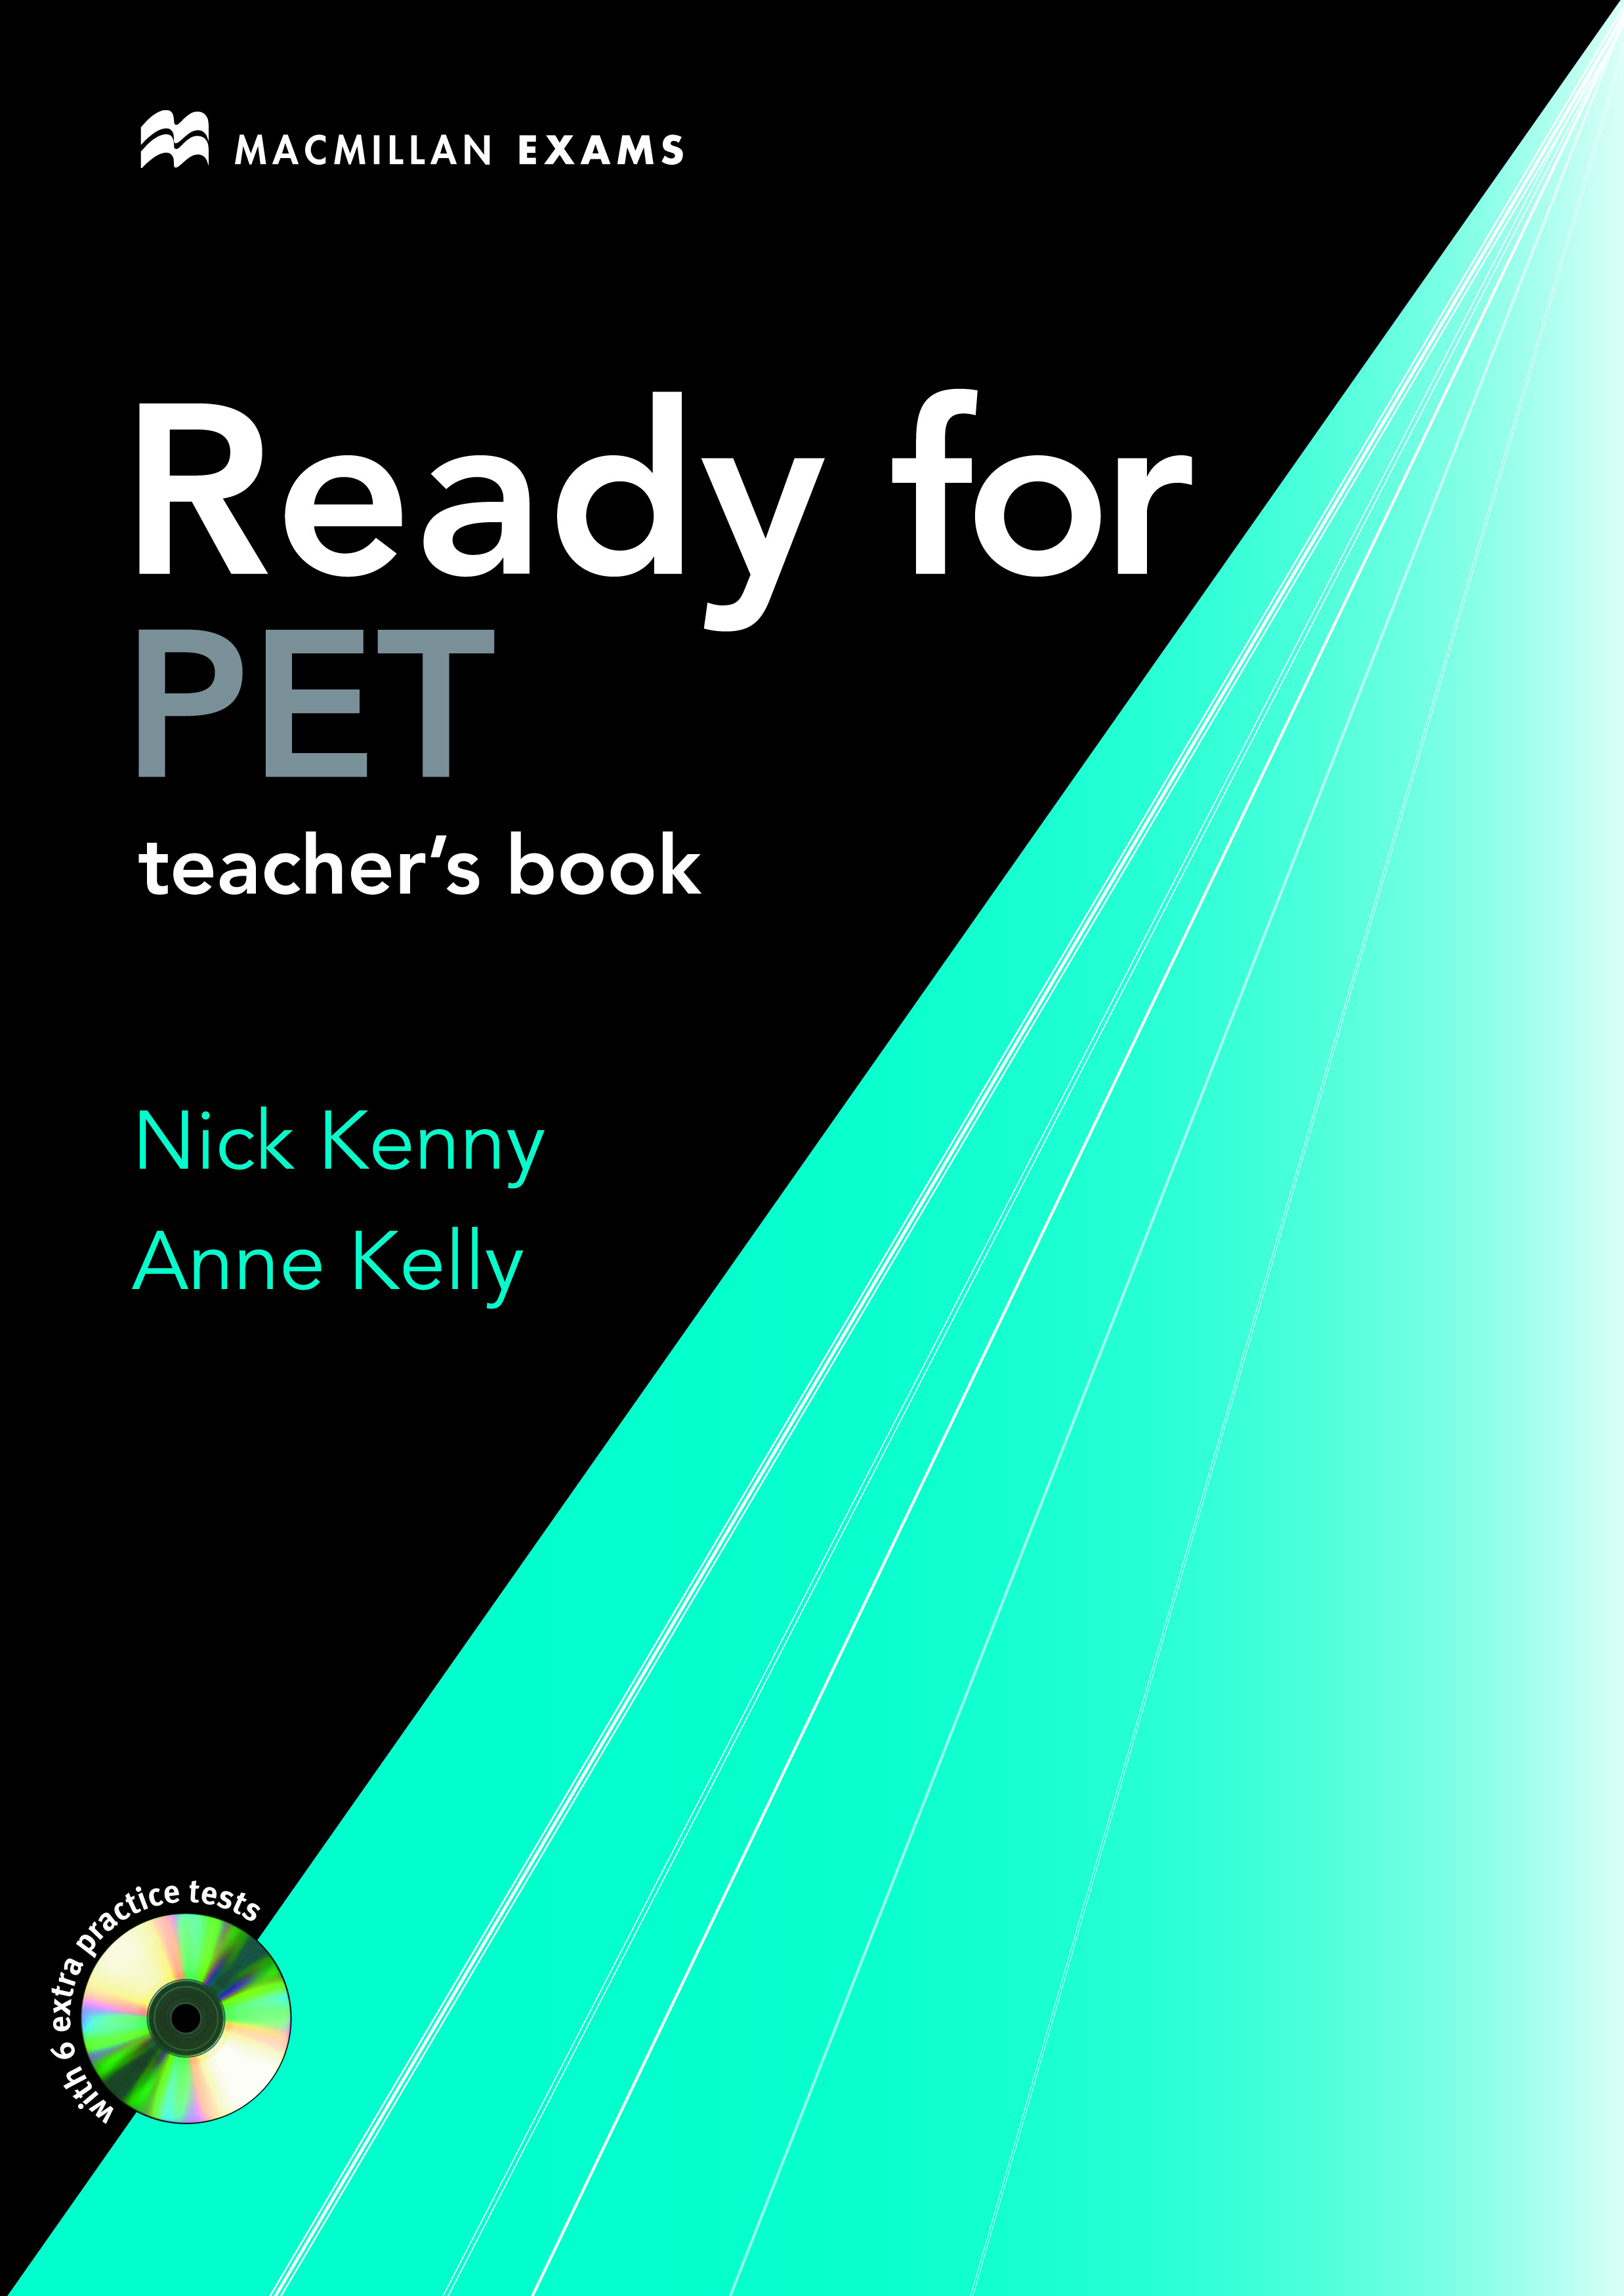 New Ready for PET Teachers